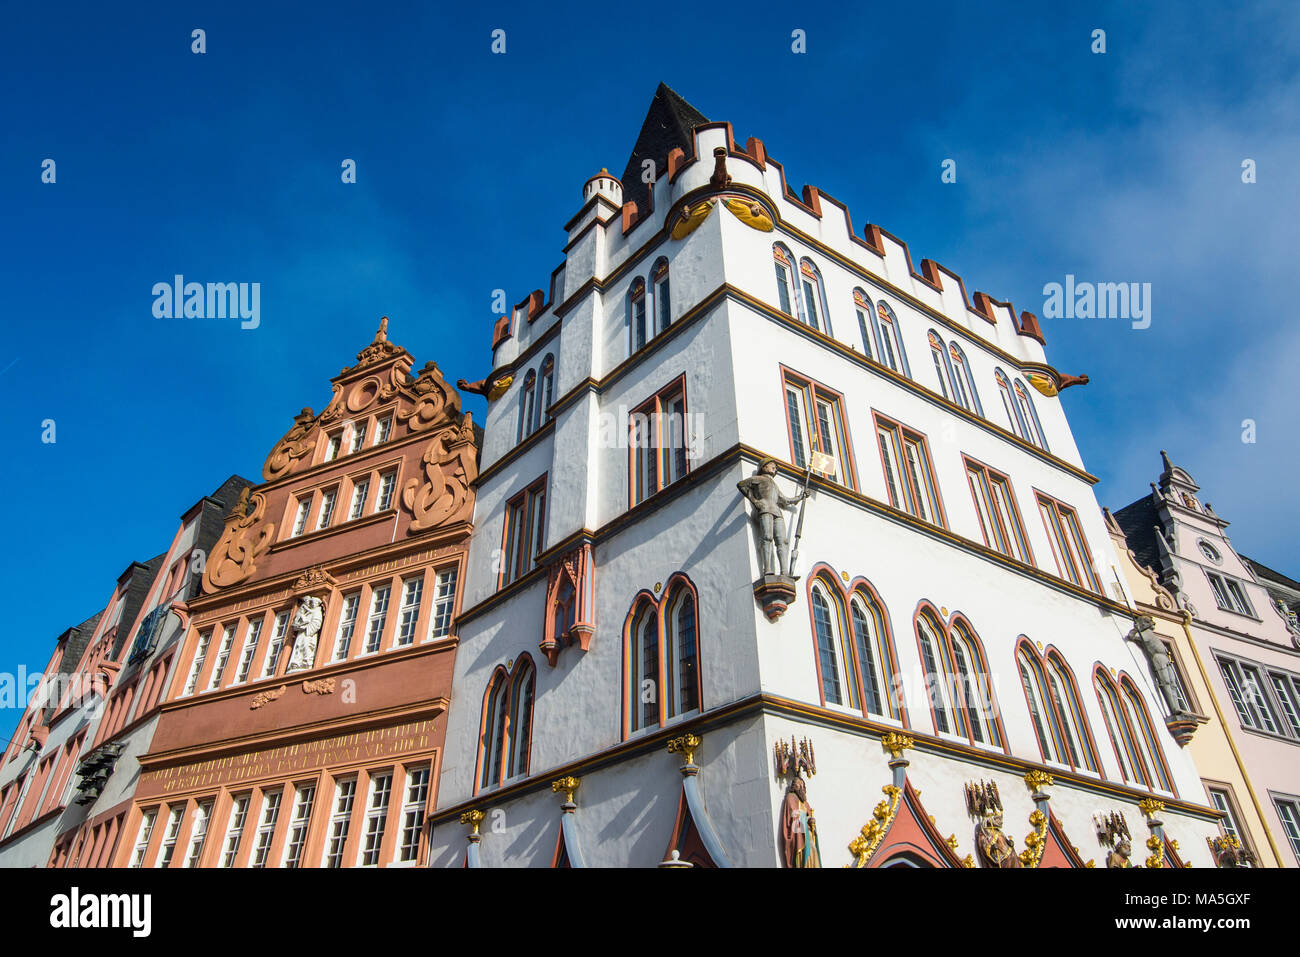 Main market in the center of the medieval Unesco world heritage sight, Trier, Moselle valley, Rhineland-Palatinate, Germany Stock Photo